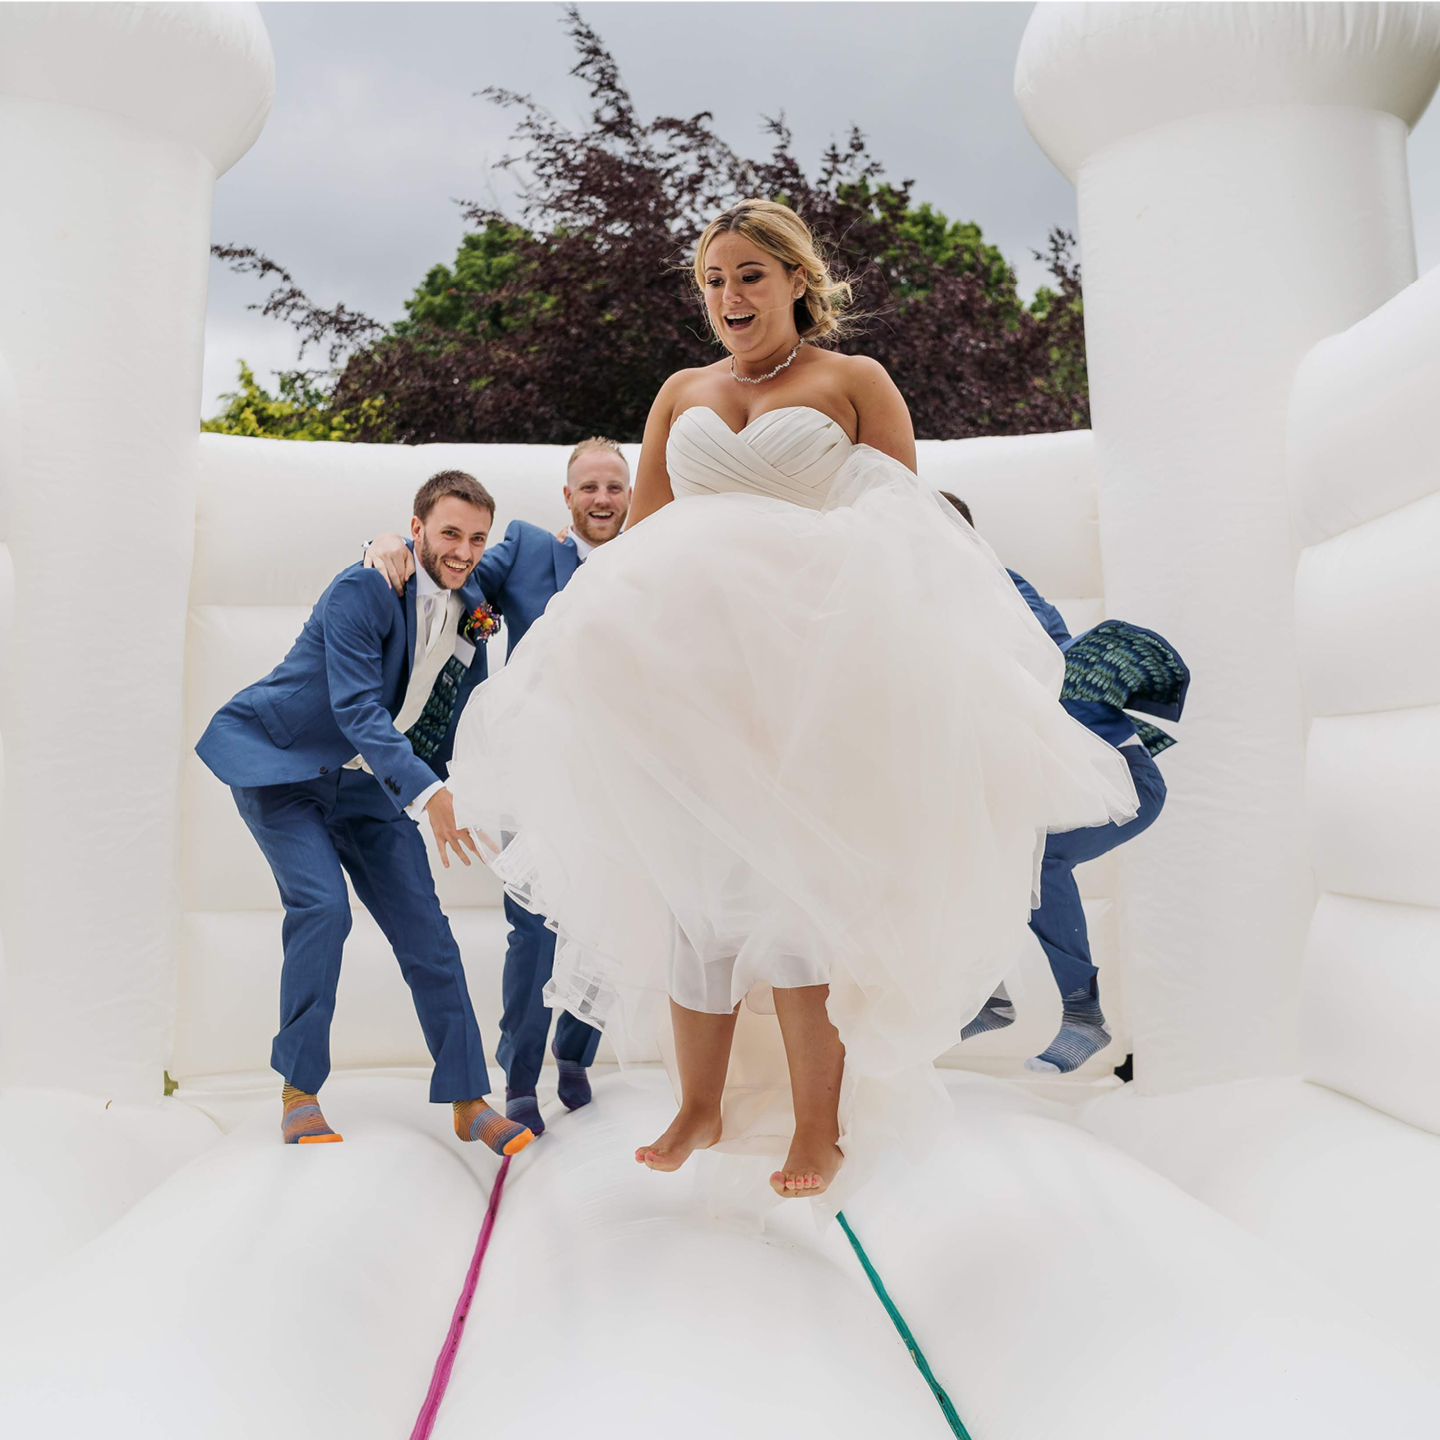 Wedding Ideas Different: Wedition: 7 Unique Wedding Ideas For 2019